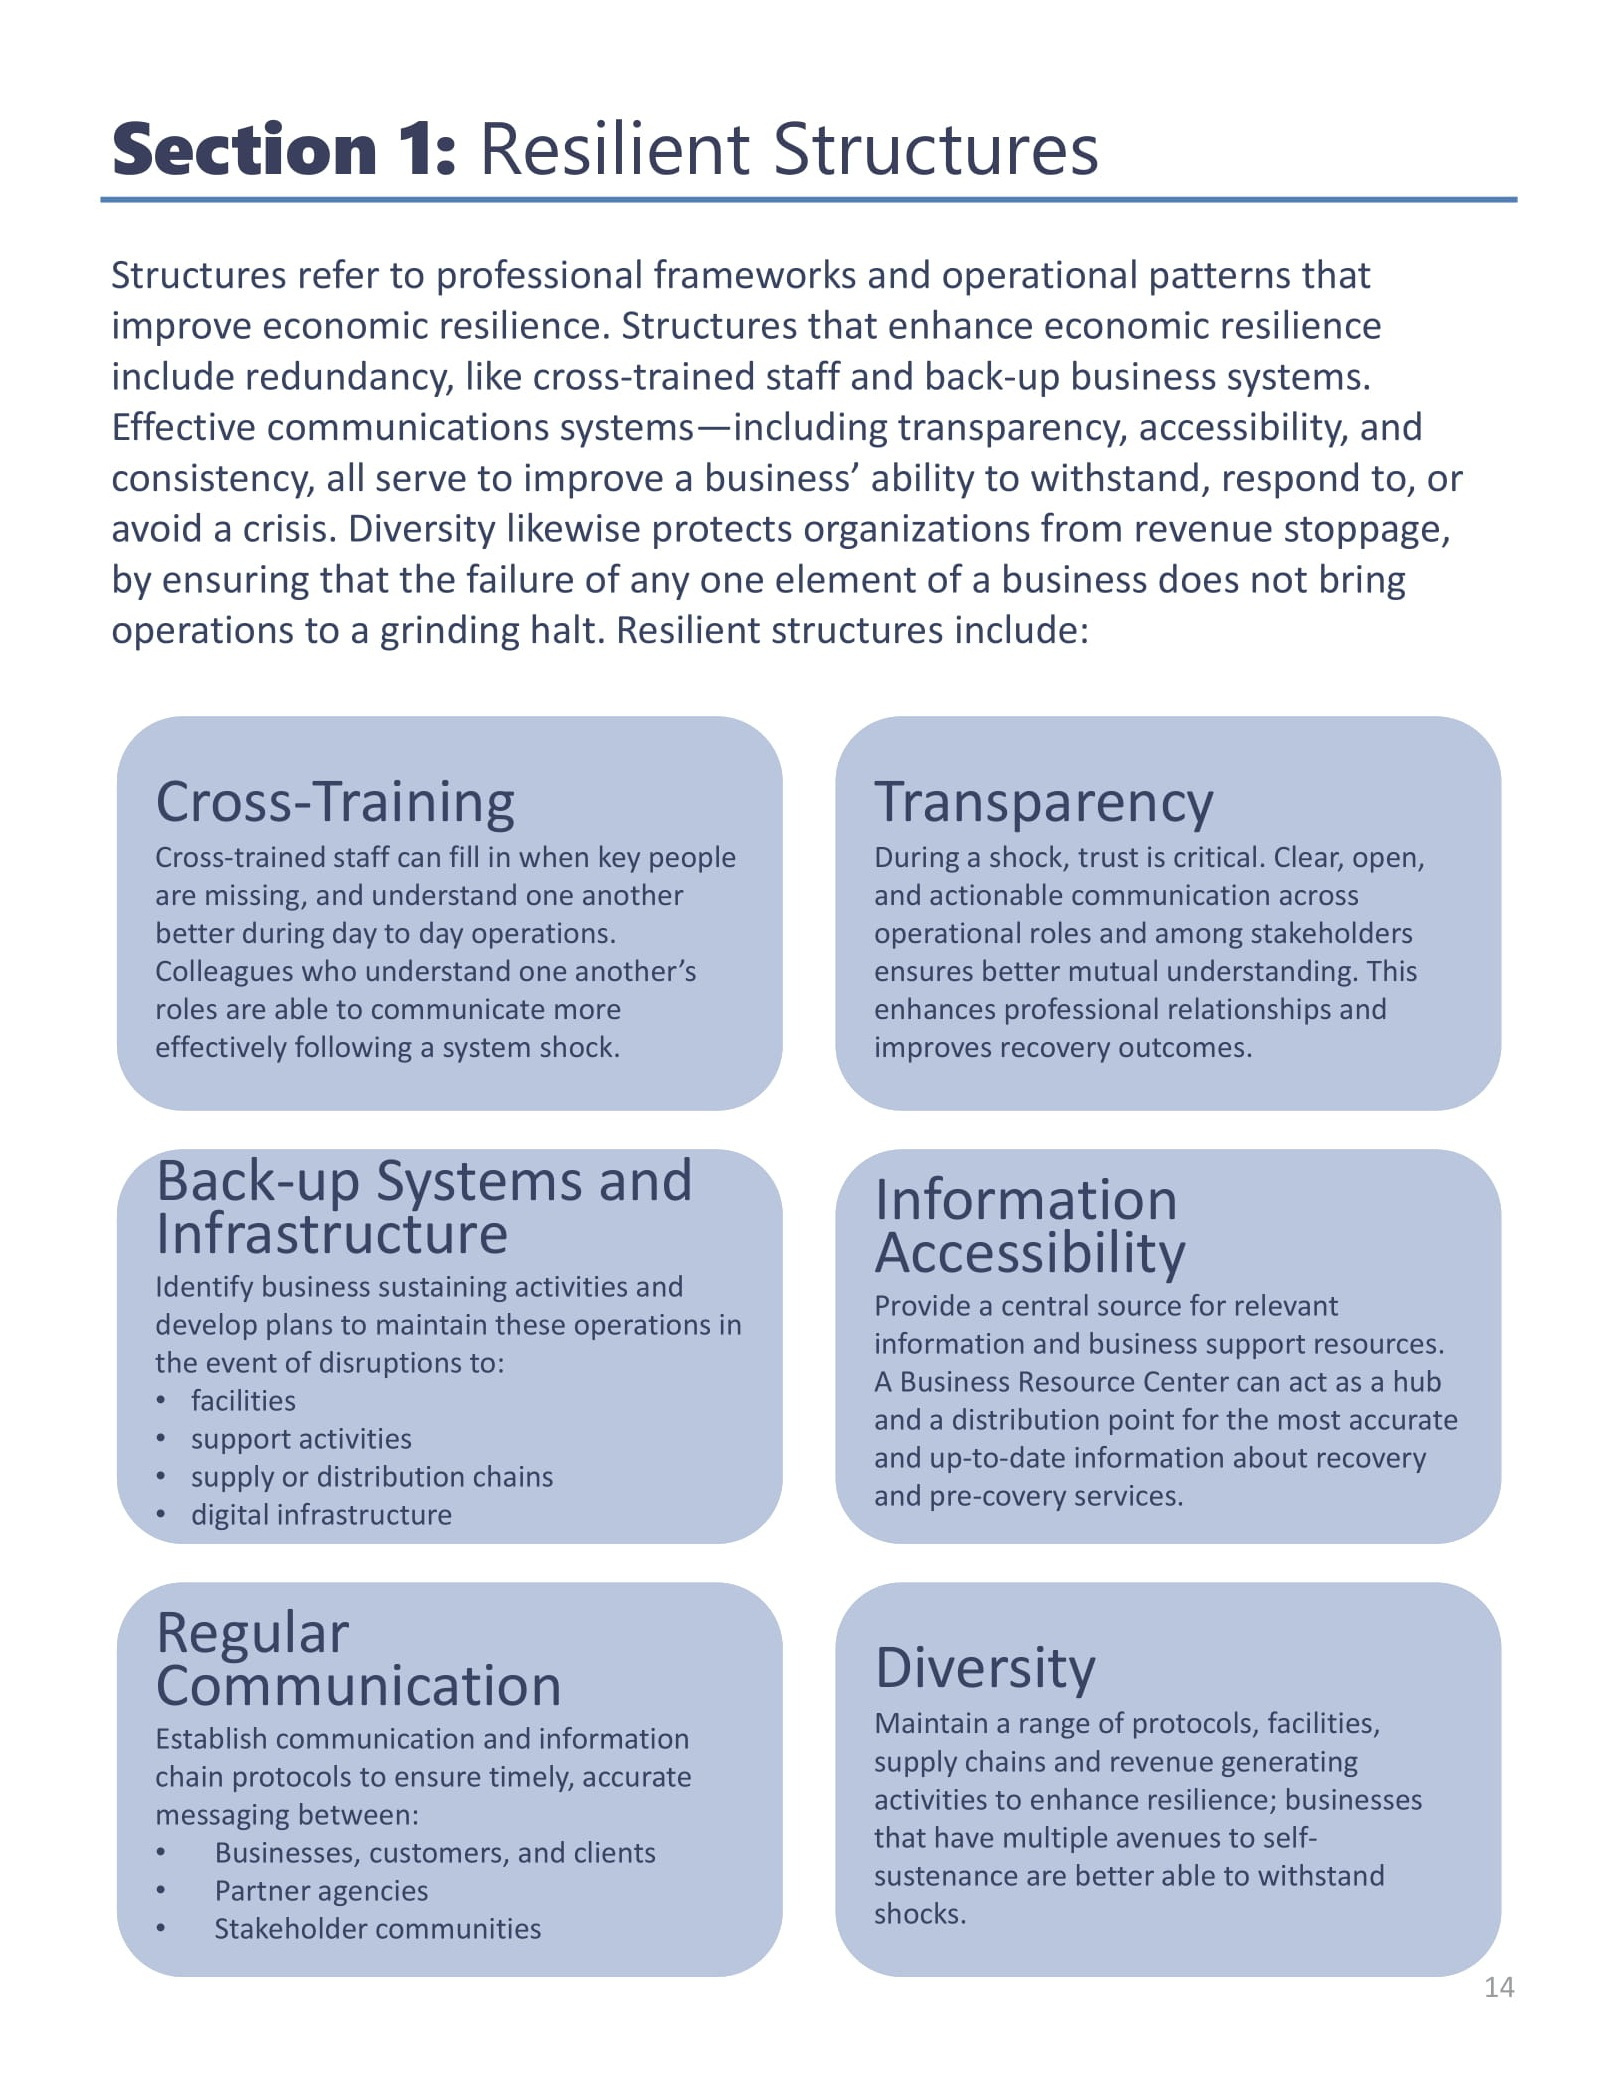 Sample content from the Oregon Economic Resilience training toolkit.